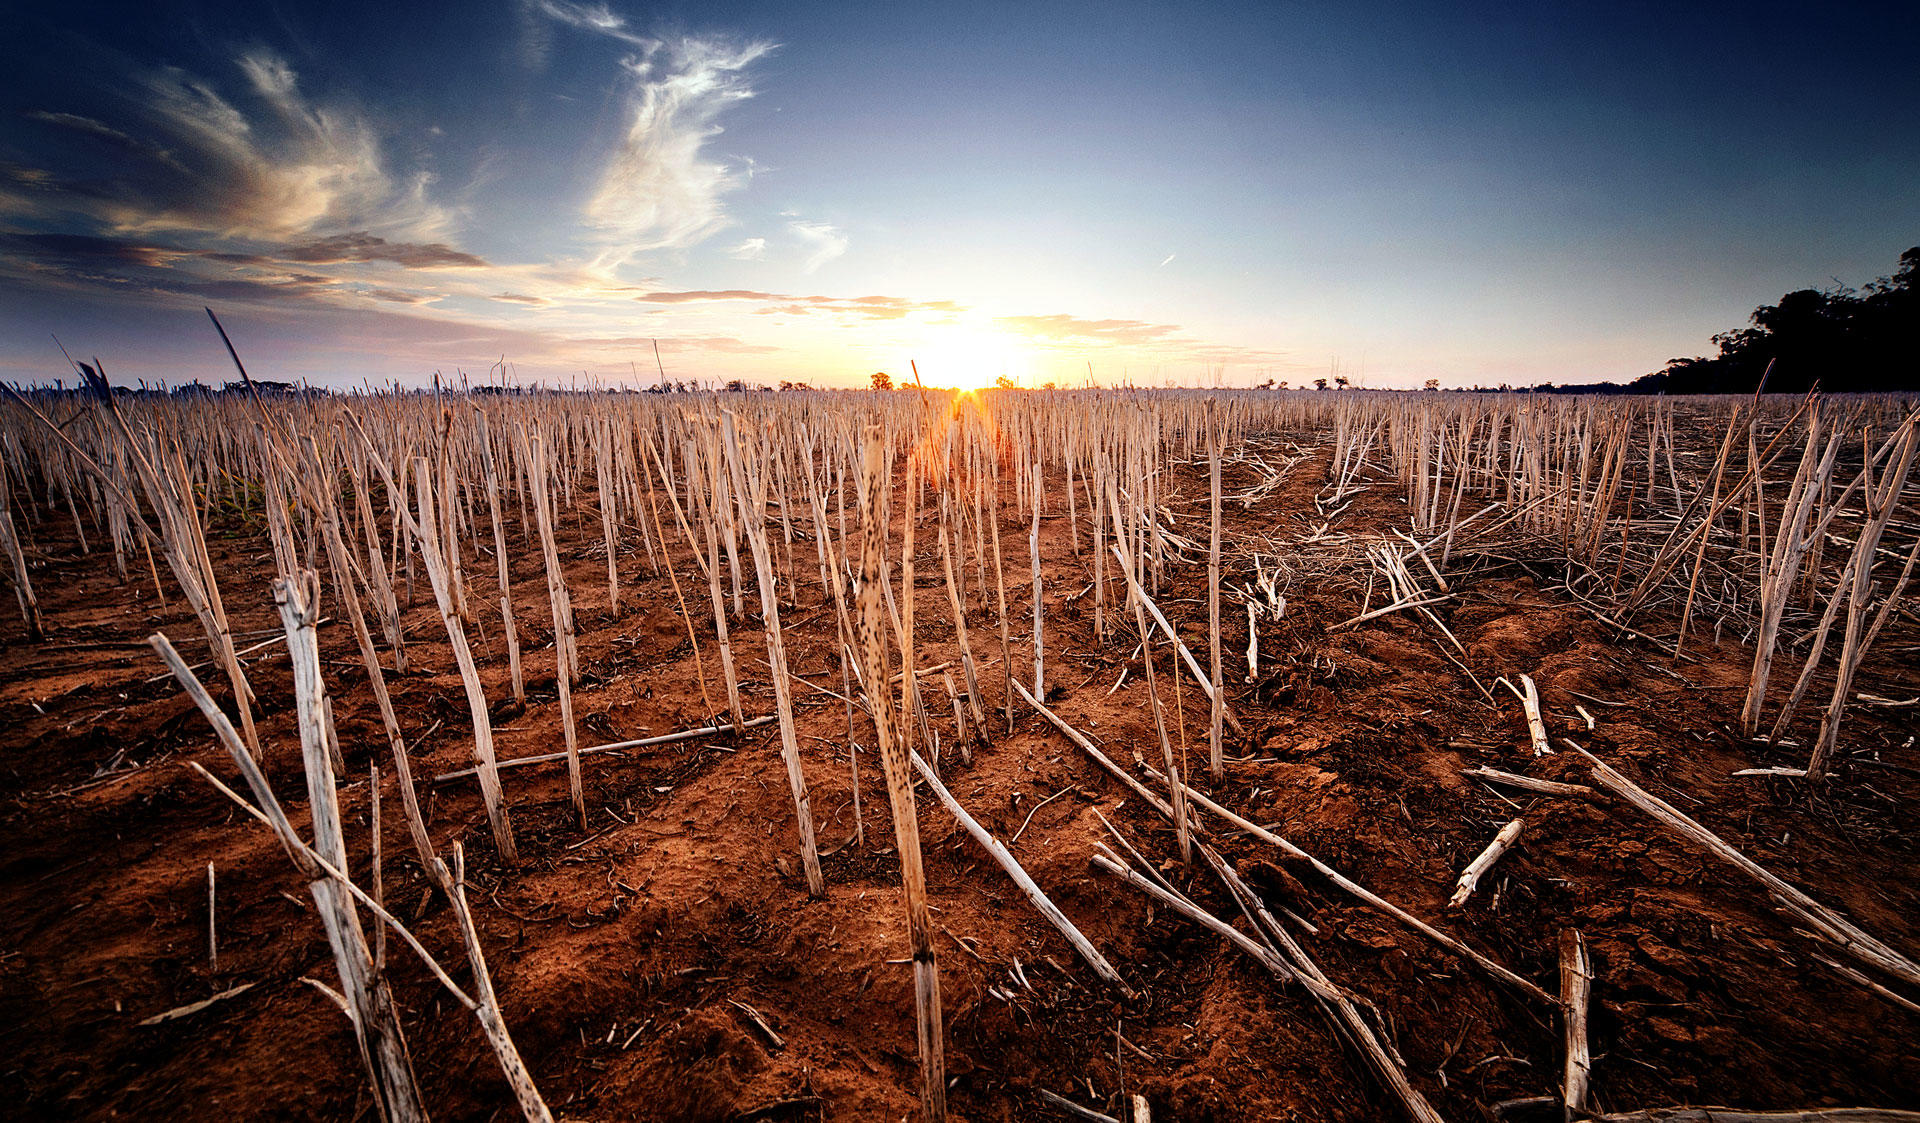 A field affected by severe drought. The image of the Master's Programme in Agricultural Sciences at the University of Helsinki.